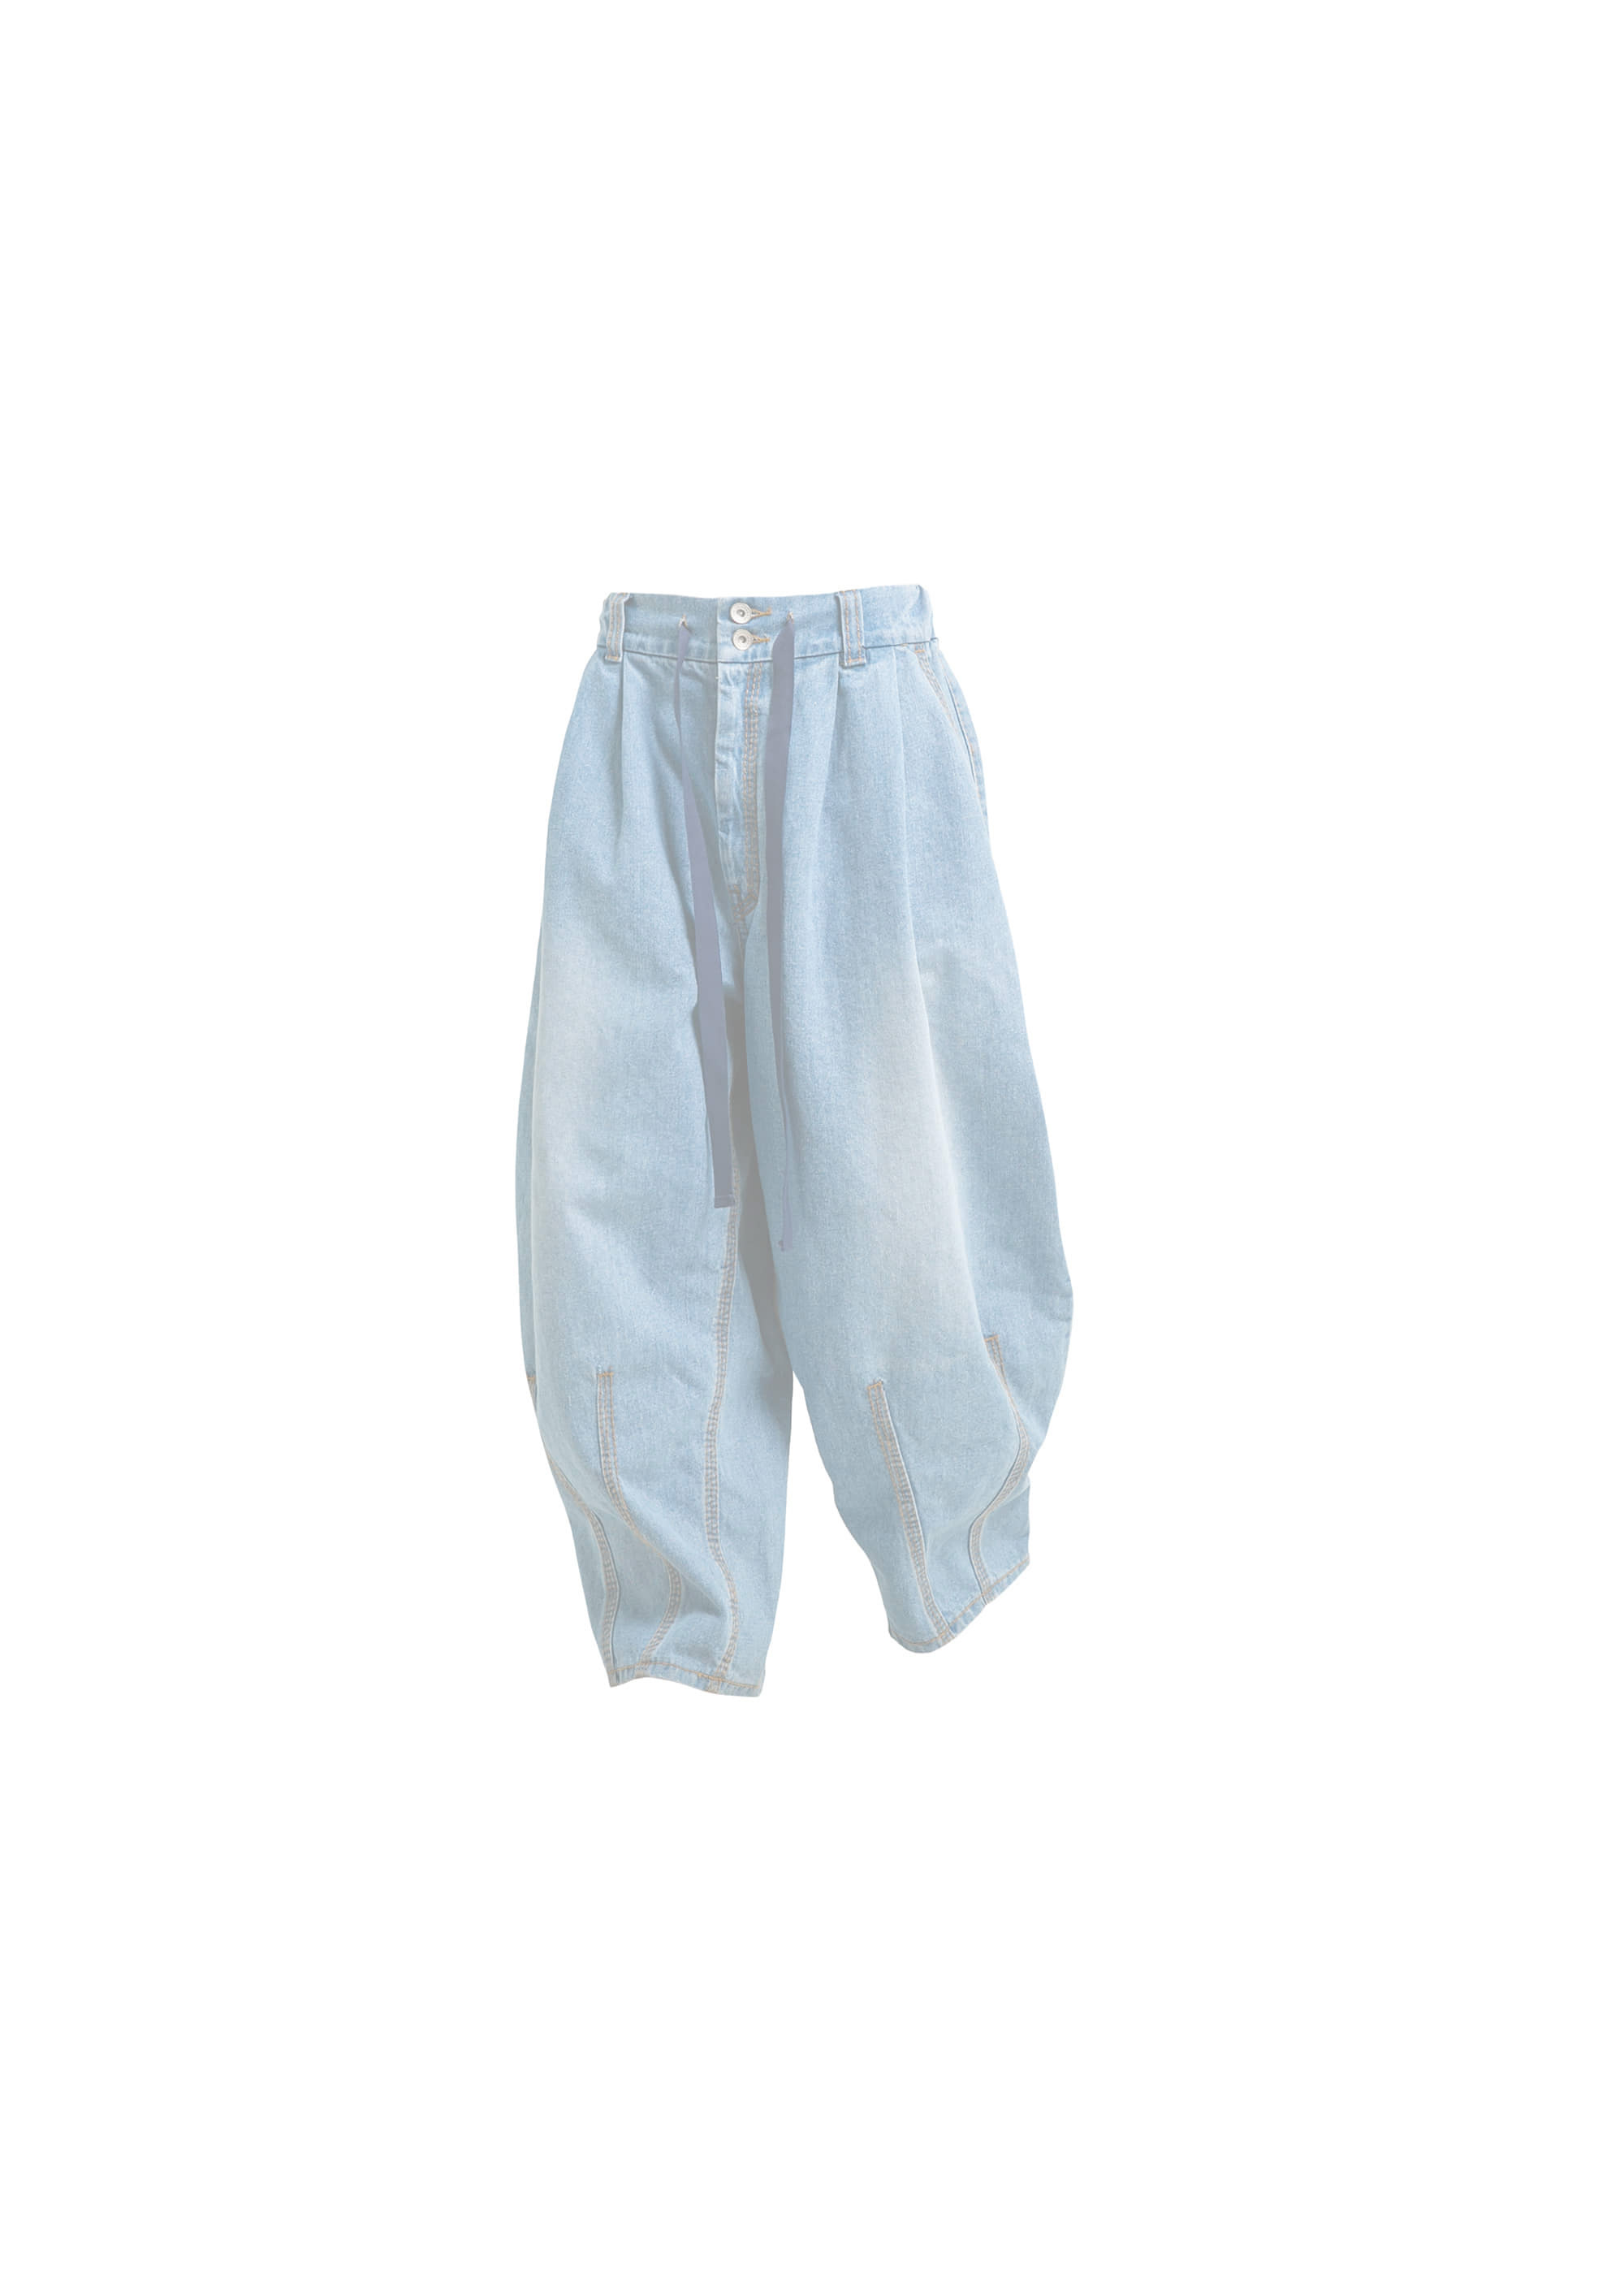 [AG] Big Stitch Denim Balloon Pants - Light Blue